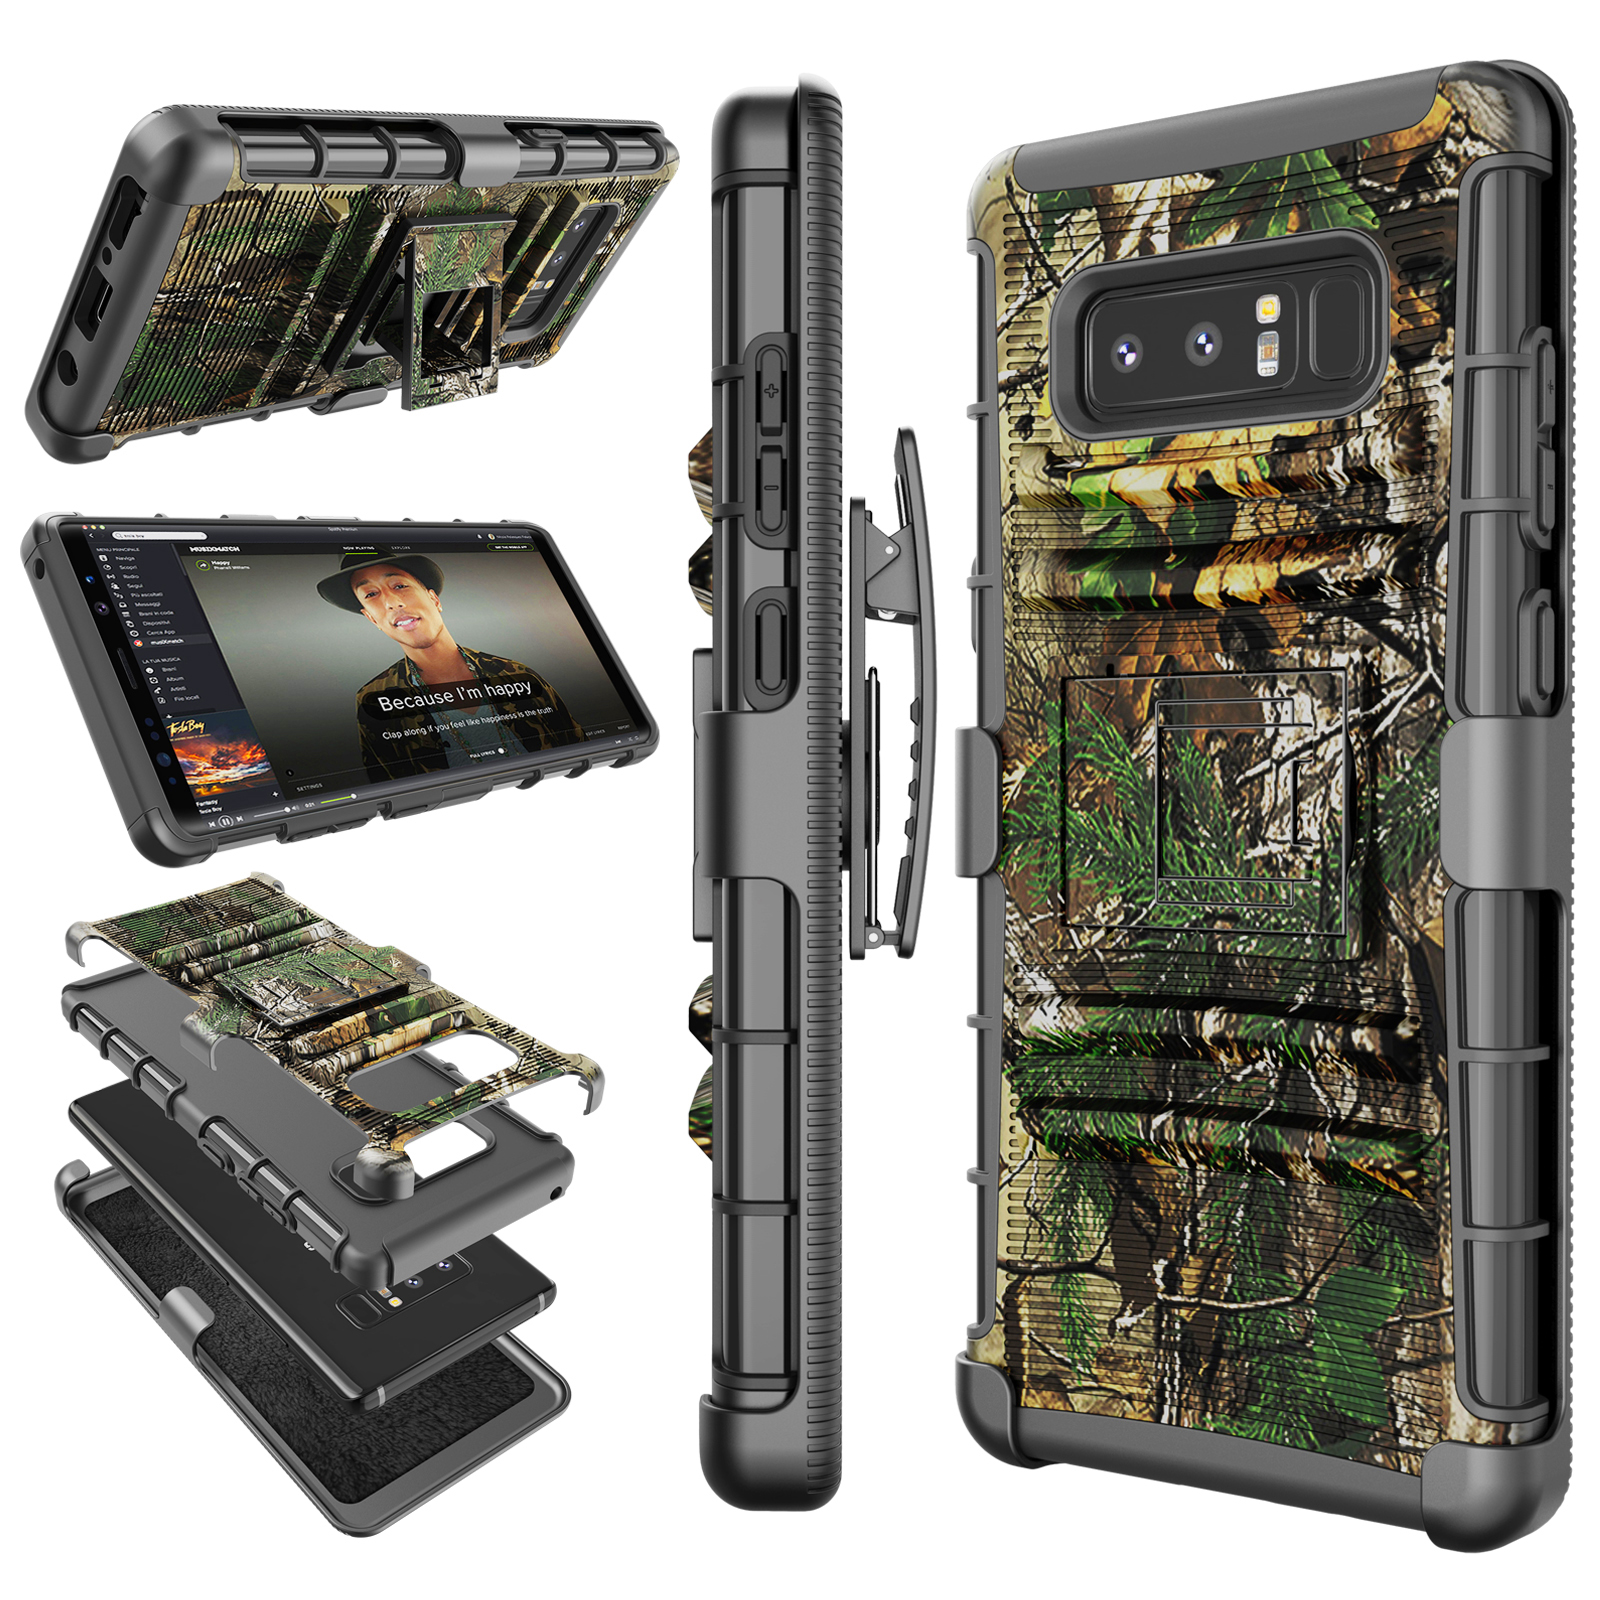 Galaxy Note 8 Case, Note 8 Holster Clip, Tekcoo [Hoplite] Shock Absorbing Swivel Locking Belt [Tree] Defender Heavy Full Body Kickstand Carrying Armor Camouflage Cases Cover For Samsung Galaxy Note 8